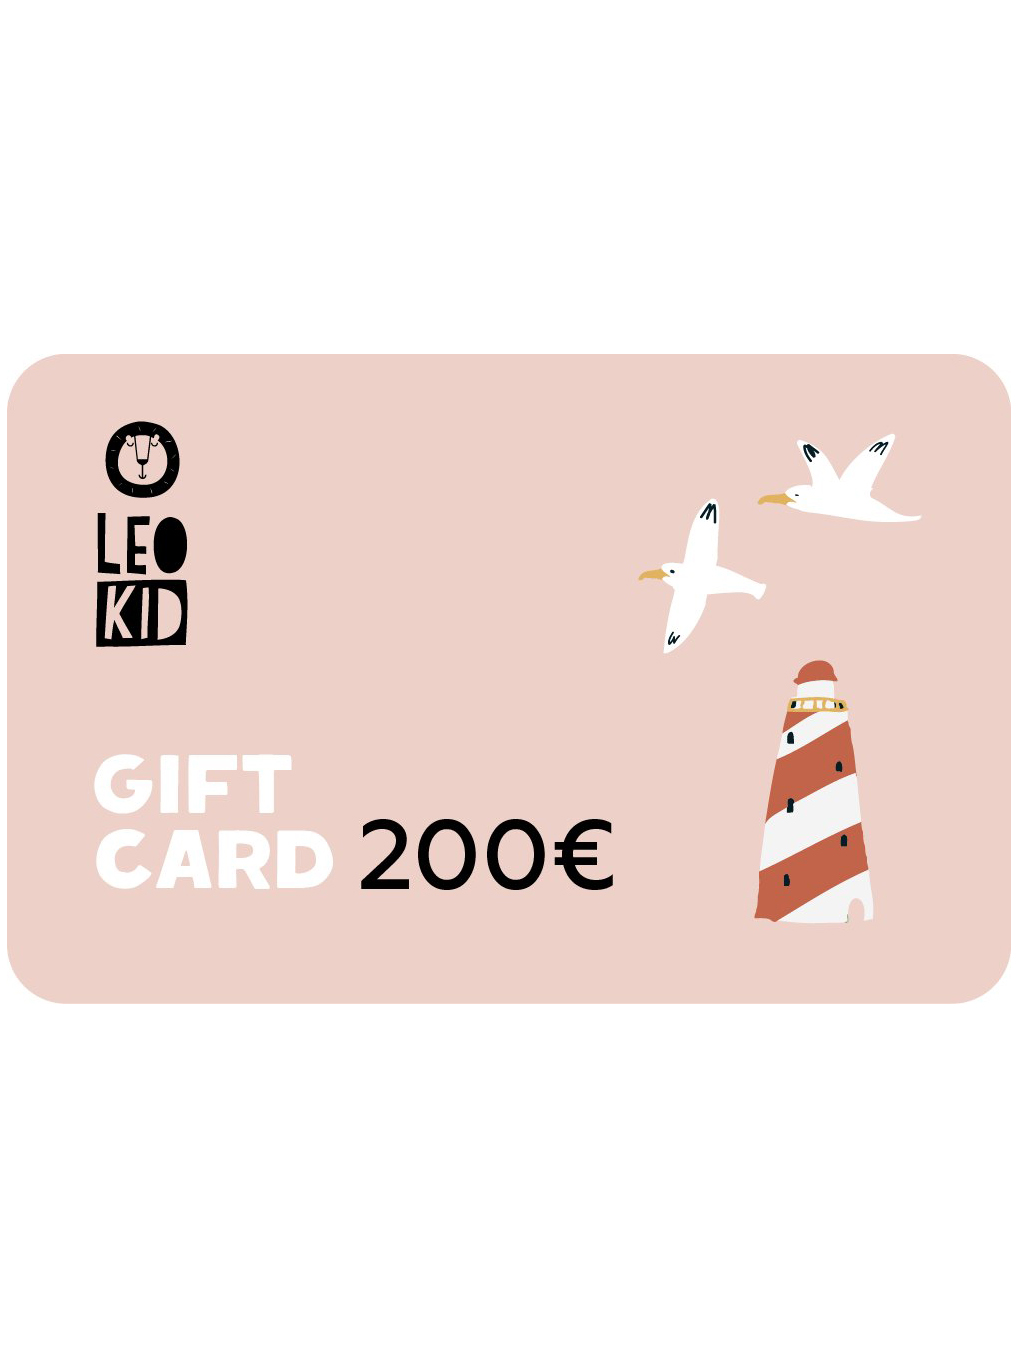 Electronic gift card 200€